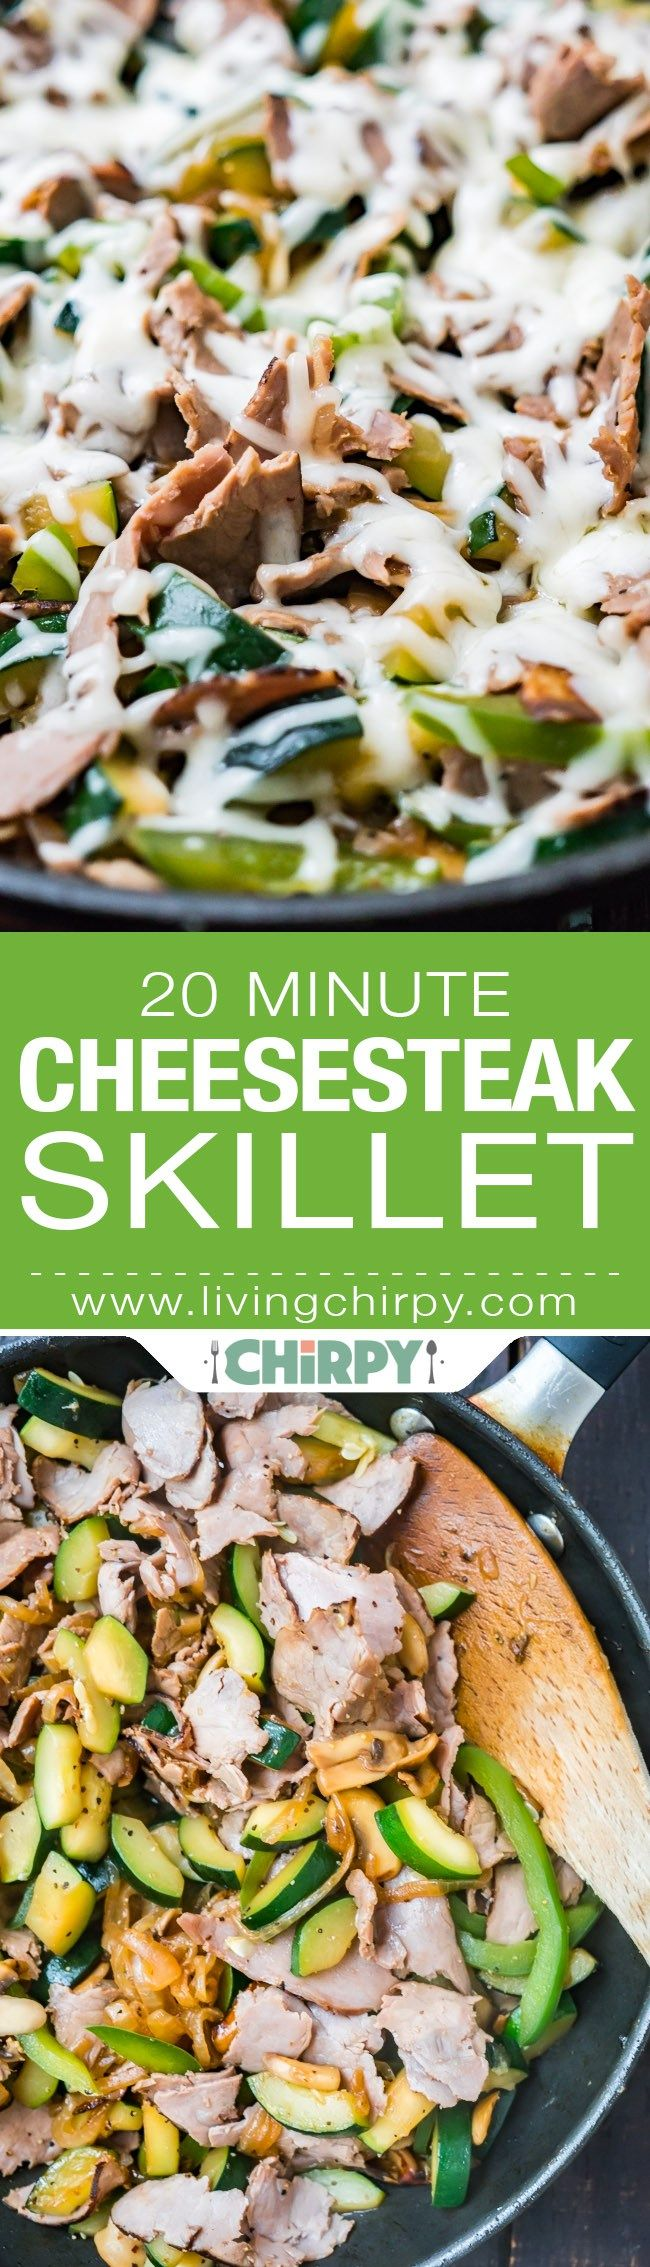 20 Minute Cheesesteak Skillet - - Thinly sliced roast beef, green pepper, onion, mushrooms and zucchini to bulk it up. Topped with some melted provolone. Low Carb, Gluten Free Paleo, Healthy, Quick, Easy